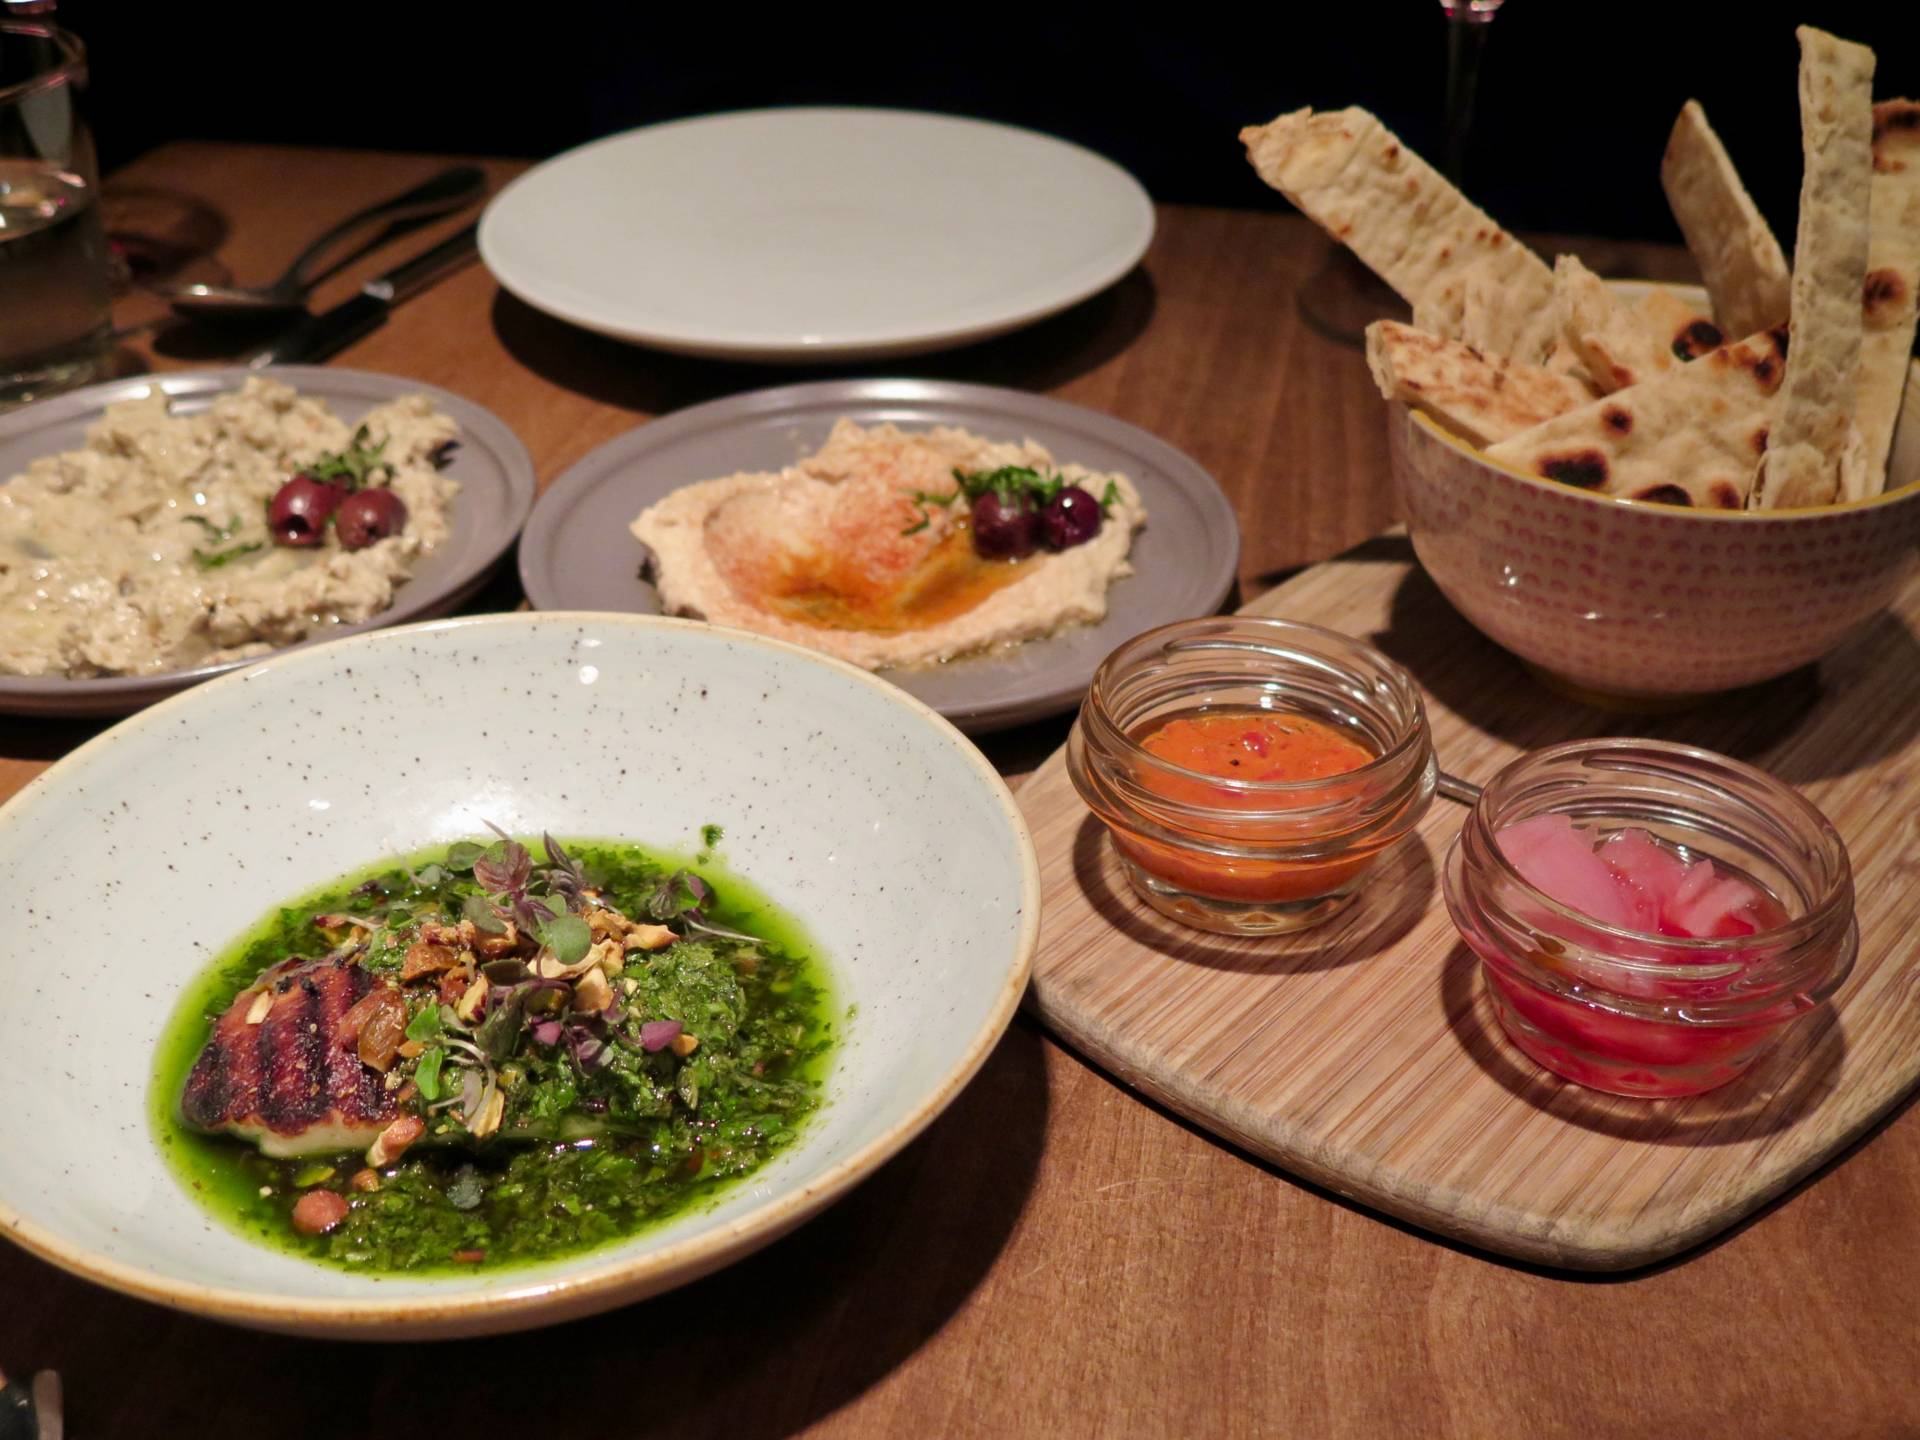 A preview of Stockhome meze and dishes at PLÄJ Restaurant earlier this year.